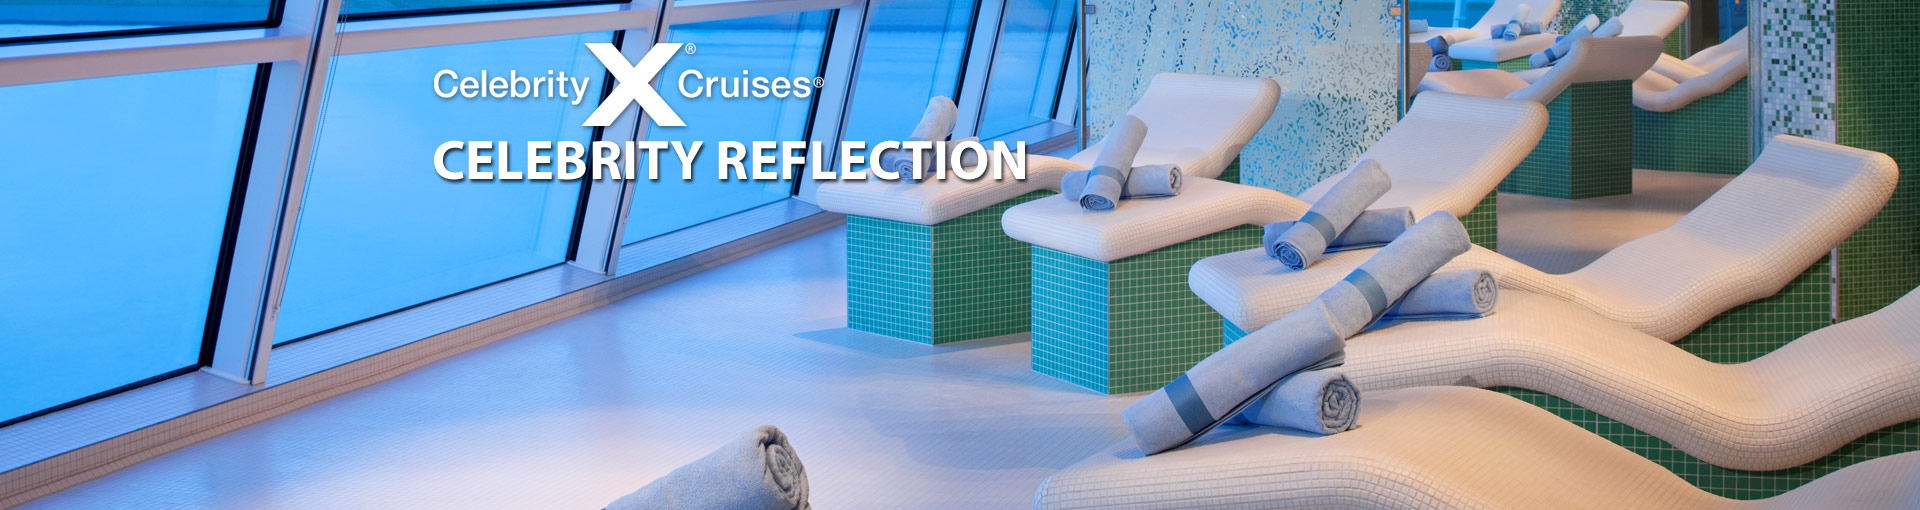 CruiseCare | Celebrity Cruises